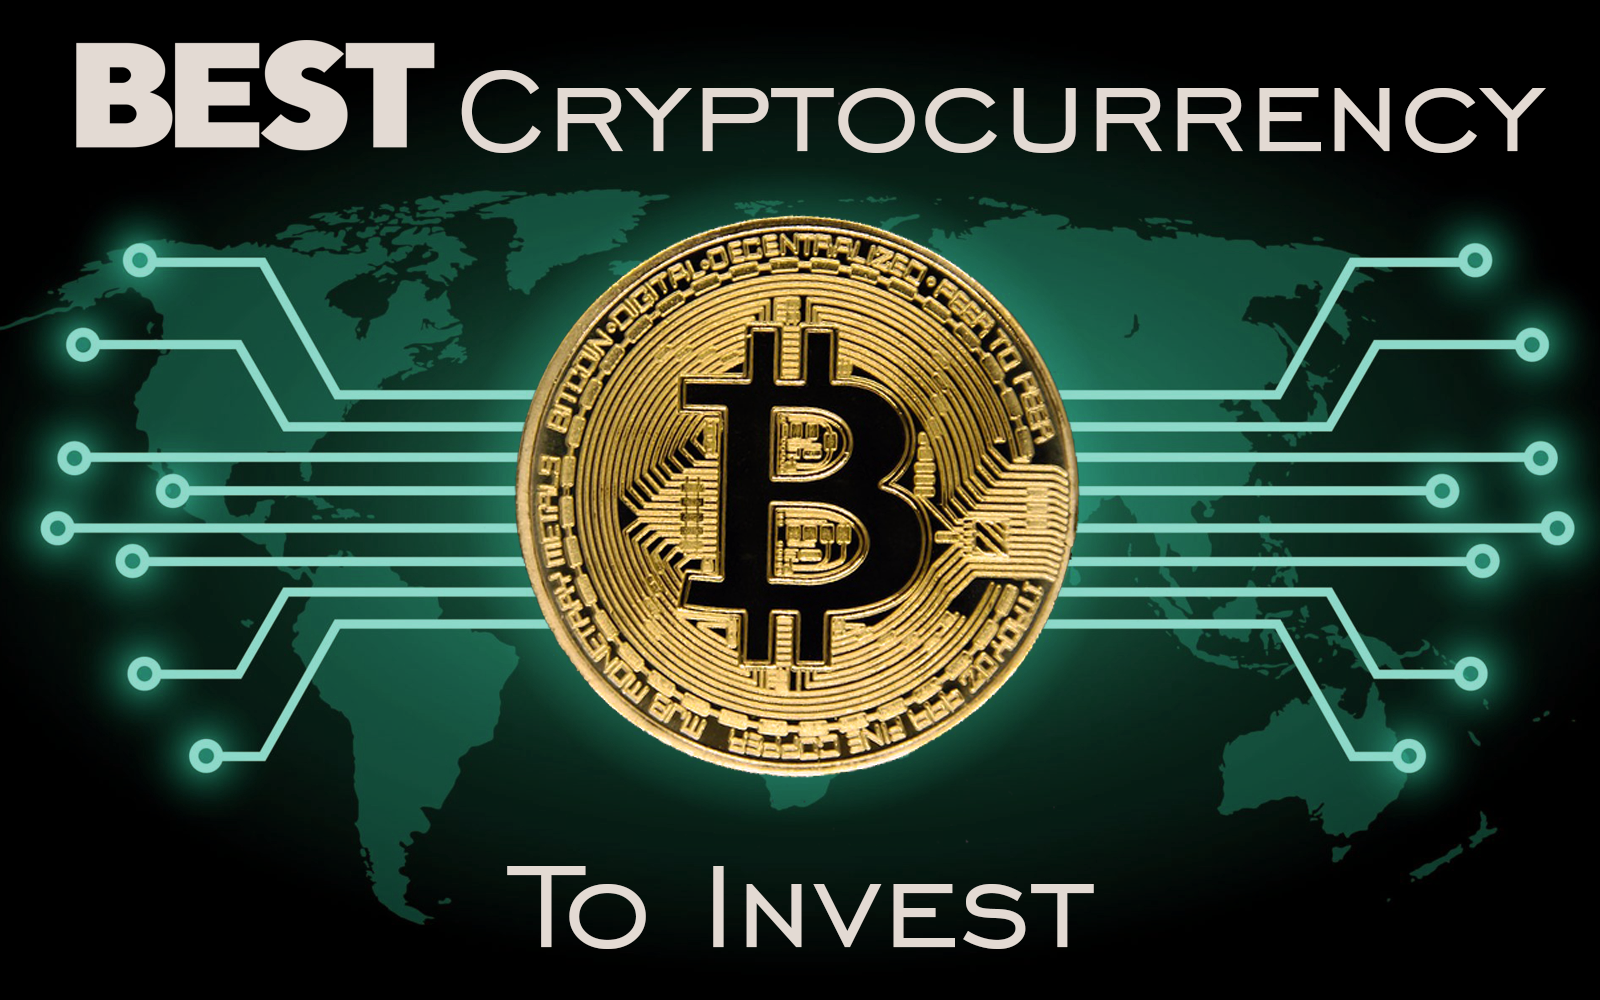 Why Is Bitcoin The Best Cryptocurrency To Invest In?